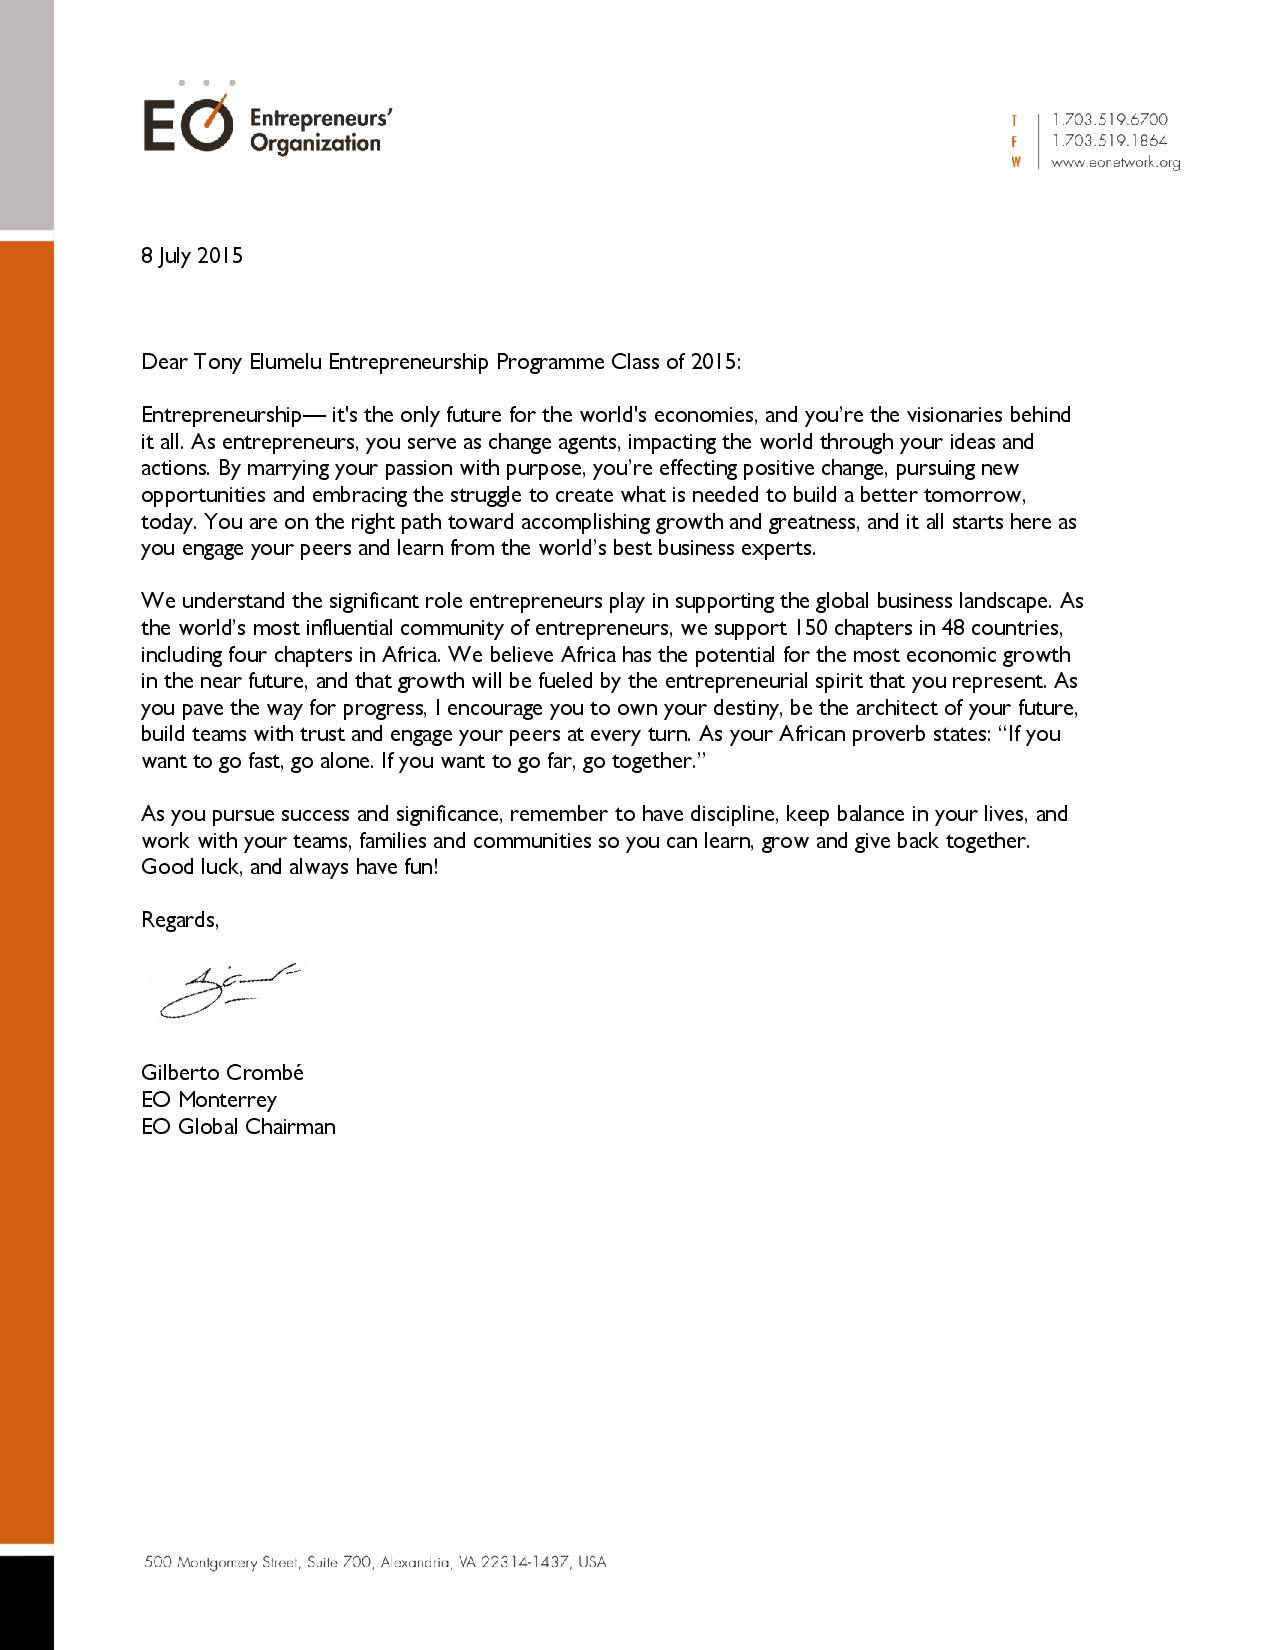 EO-Global-Chairman-Letter-TEEP-page-001